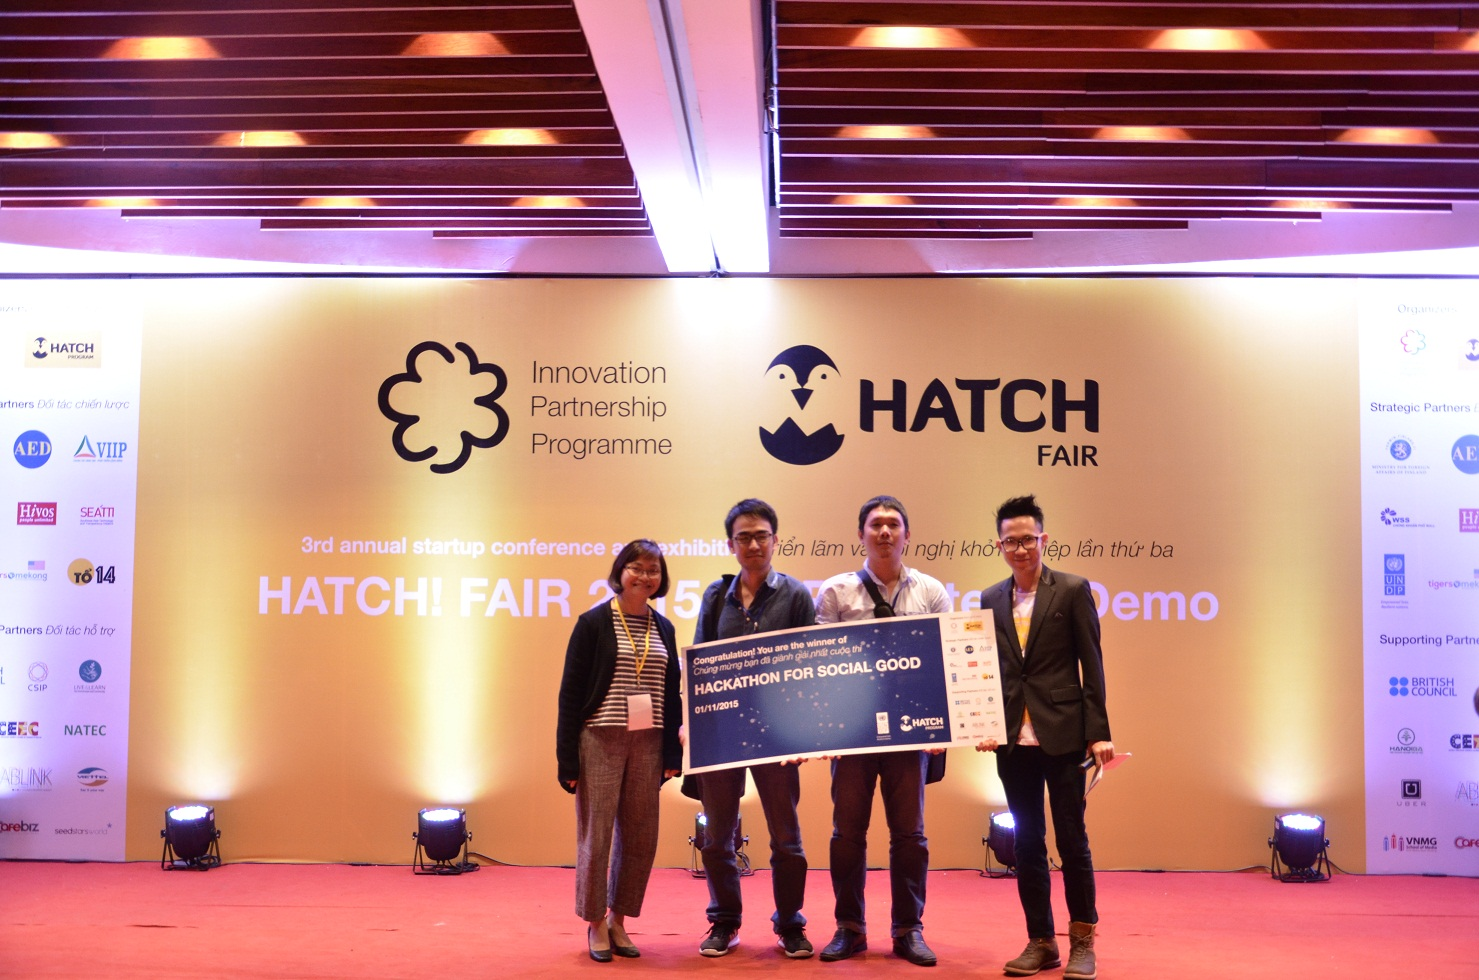 Coding competition promotes social good